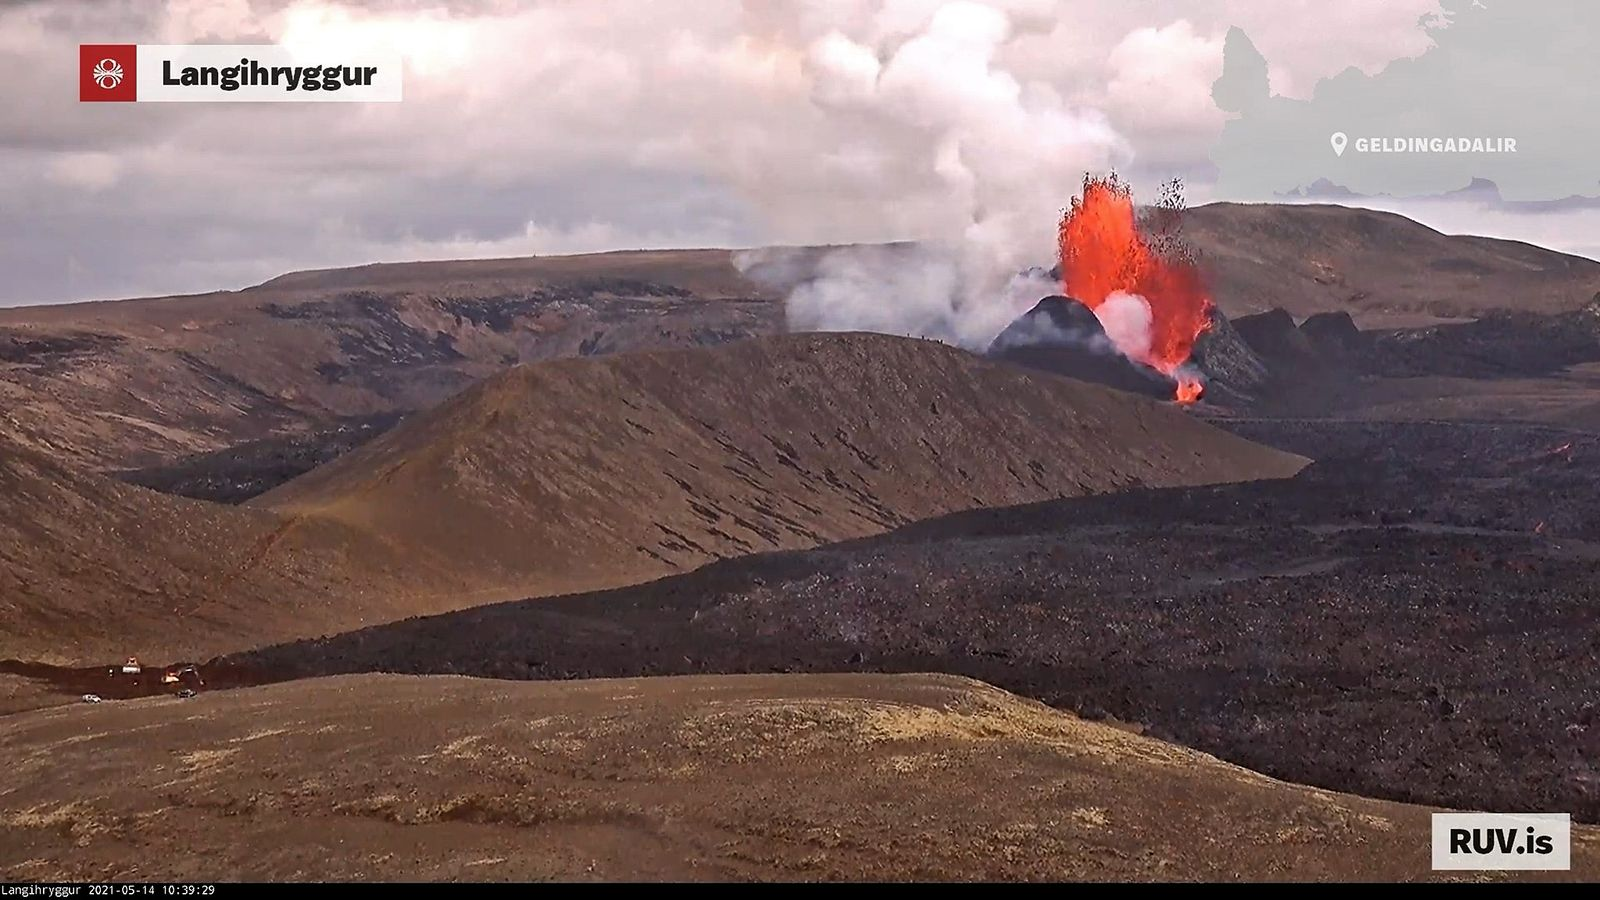 Nameless valley - 05.14.2021 / 10:39 a.m. - while the lava fountains follow each other rhythmically, the first civil engineering machines begin work (far left of the lava field) work - webcam langihryggur